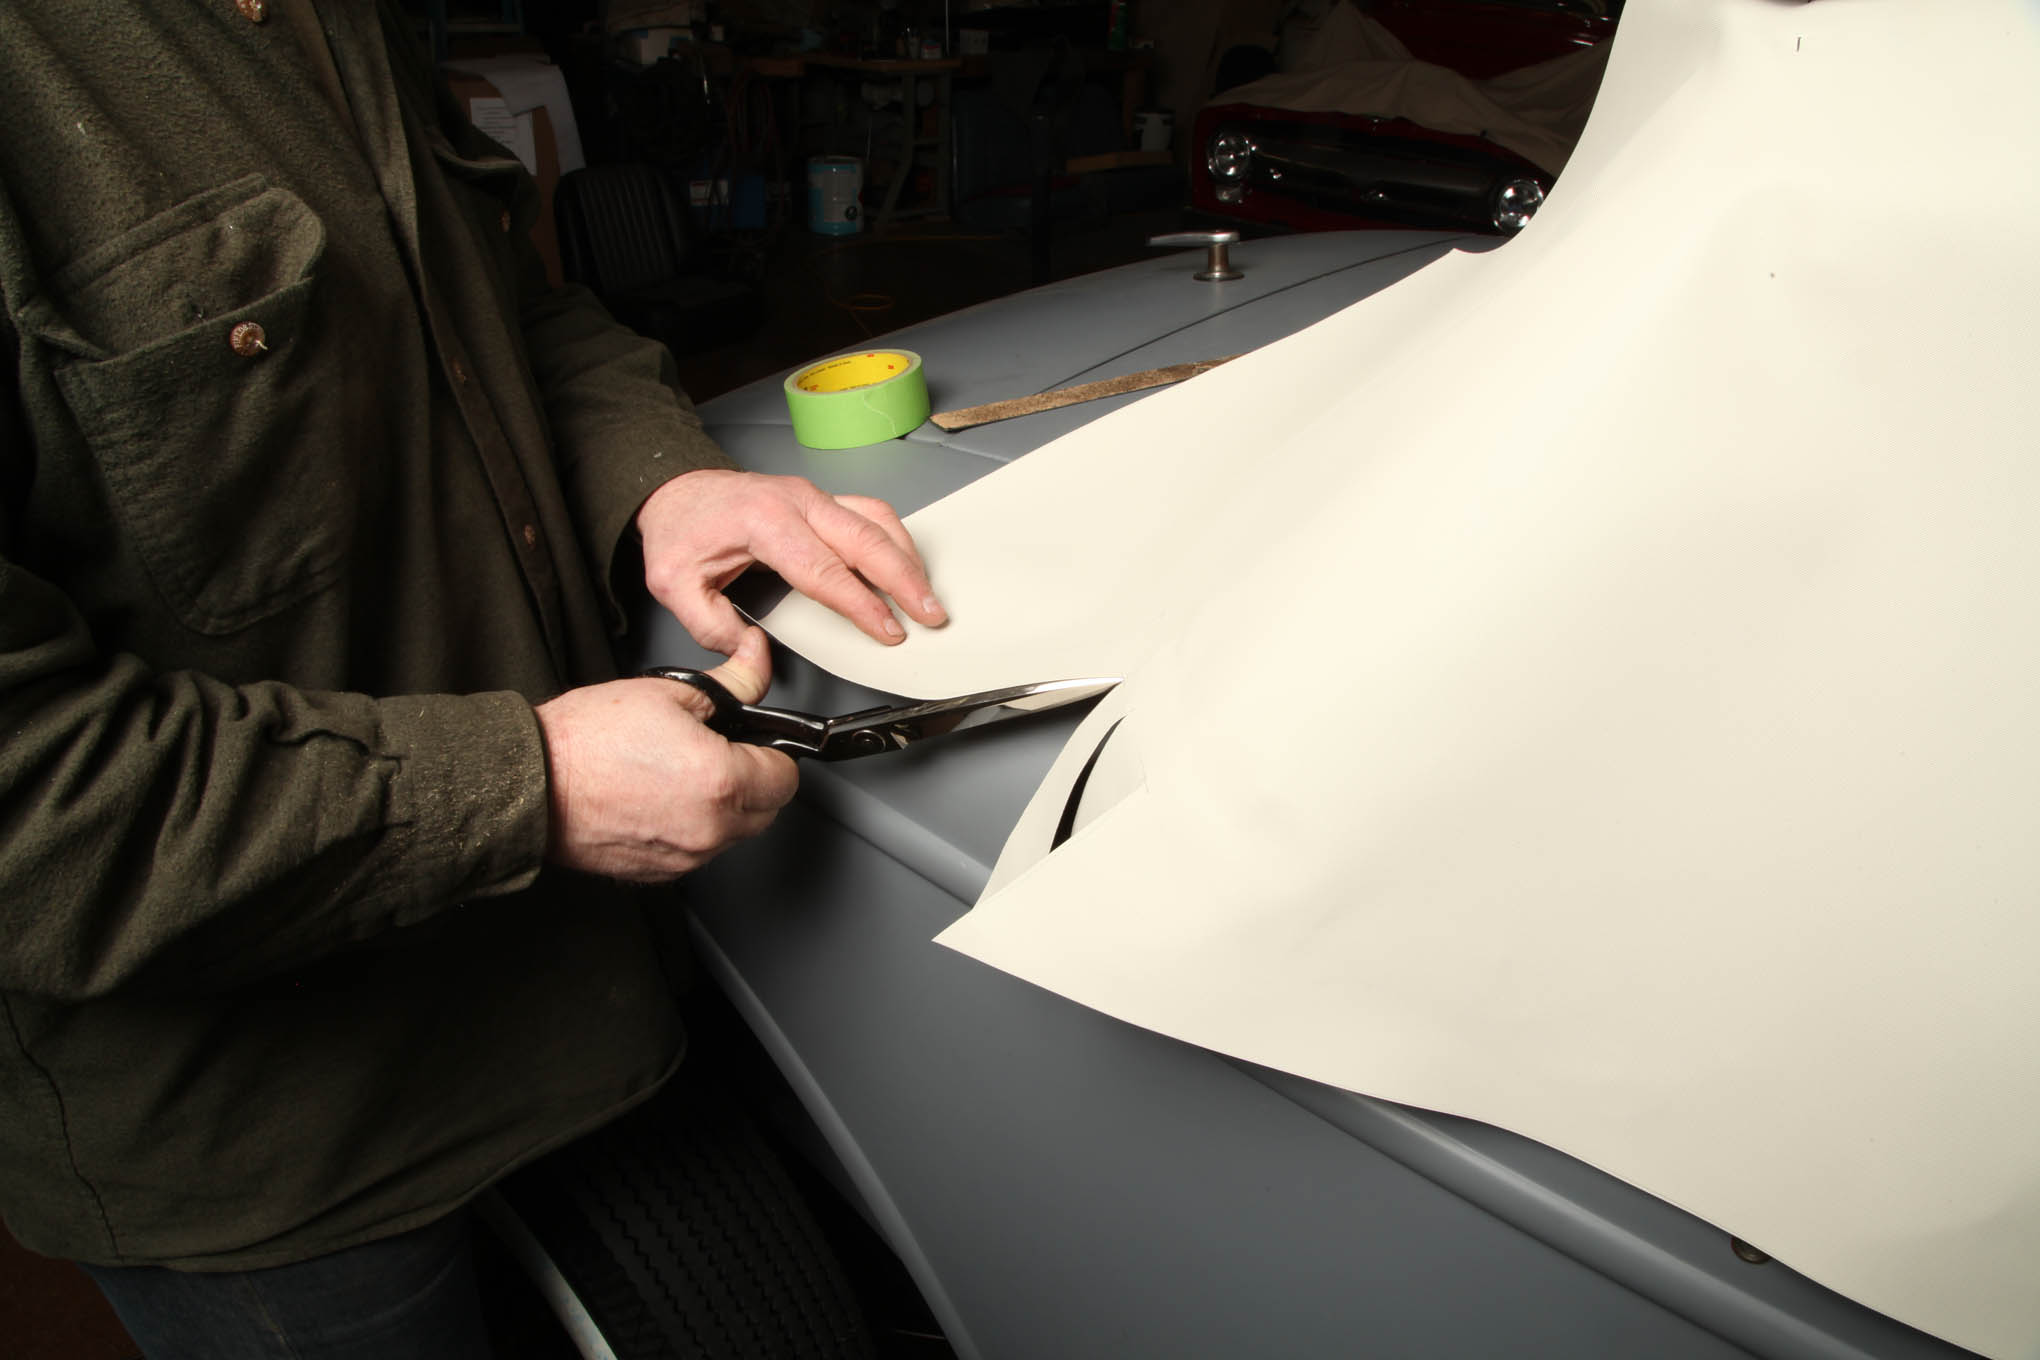 After stapling the side panels, Reichlin slit the overhanging vinyl to relieve the tension. The panel then splays out and lays flat around the sides.